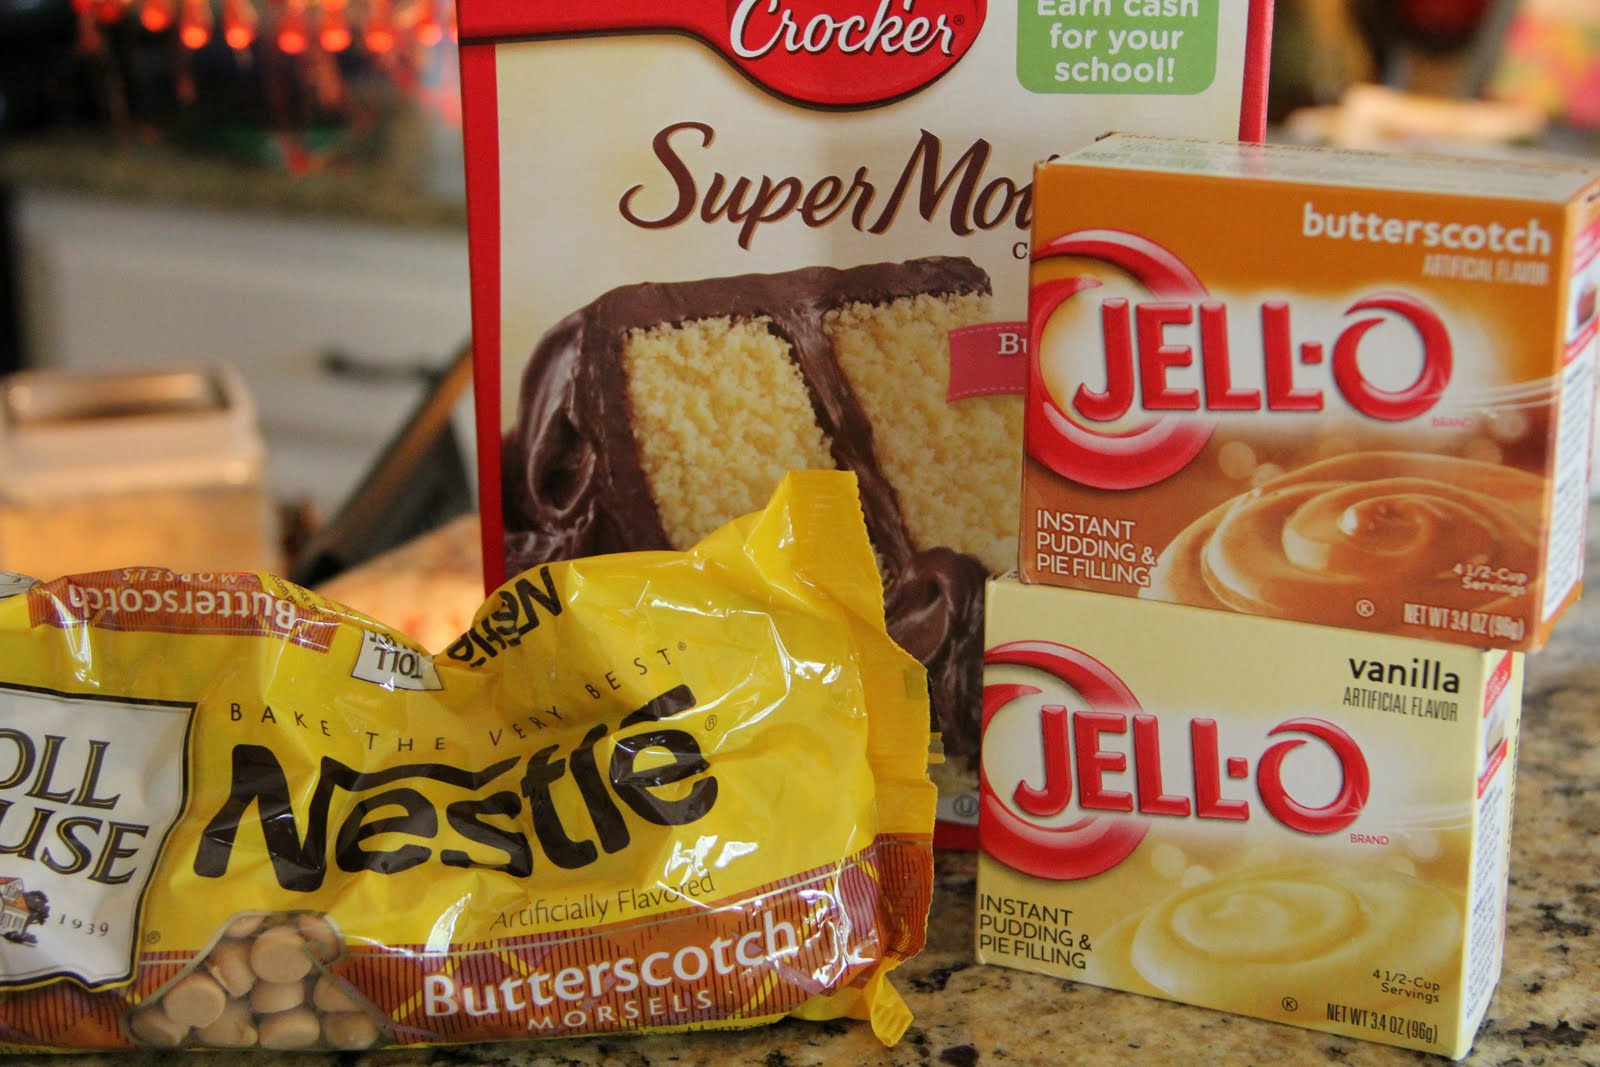 Cake recipe with instant pudding mix